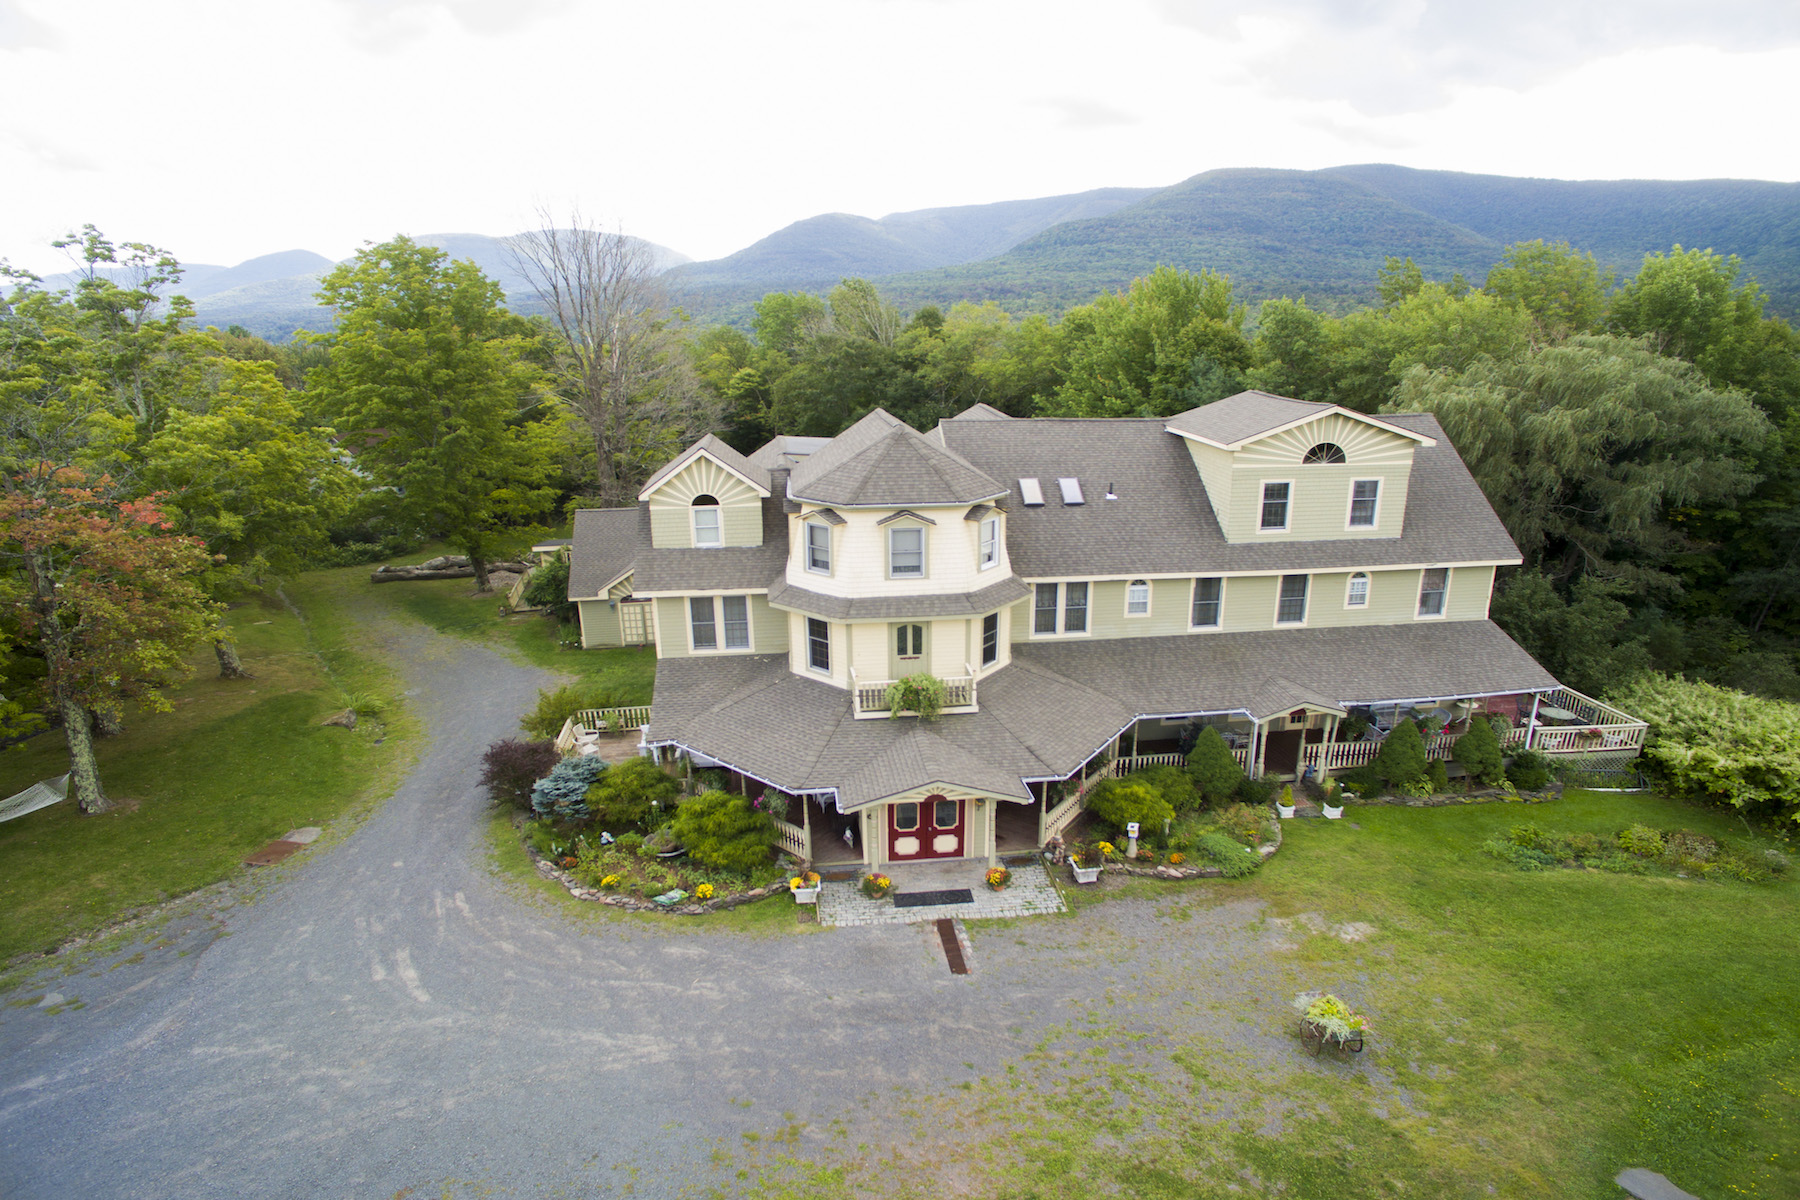 Other Residential for Sale at Victorian Home on The Rip Van Winkle Trail 6629 Route 23A Tannersville, New York 12442 United States